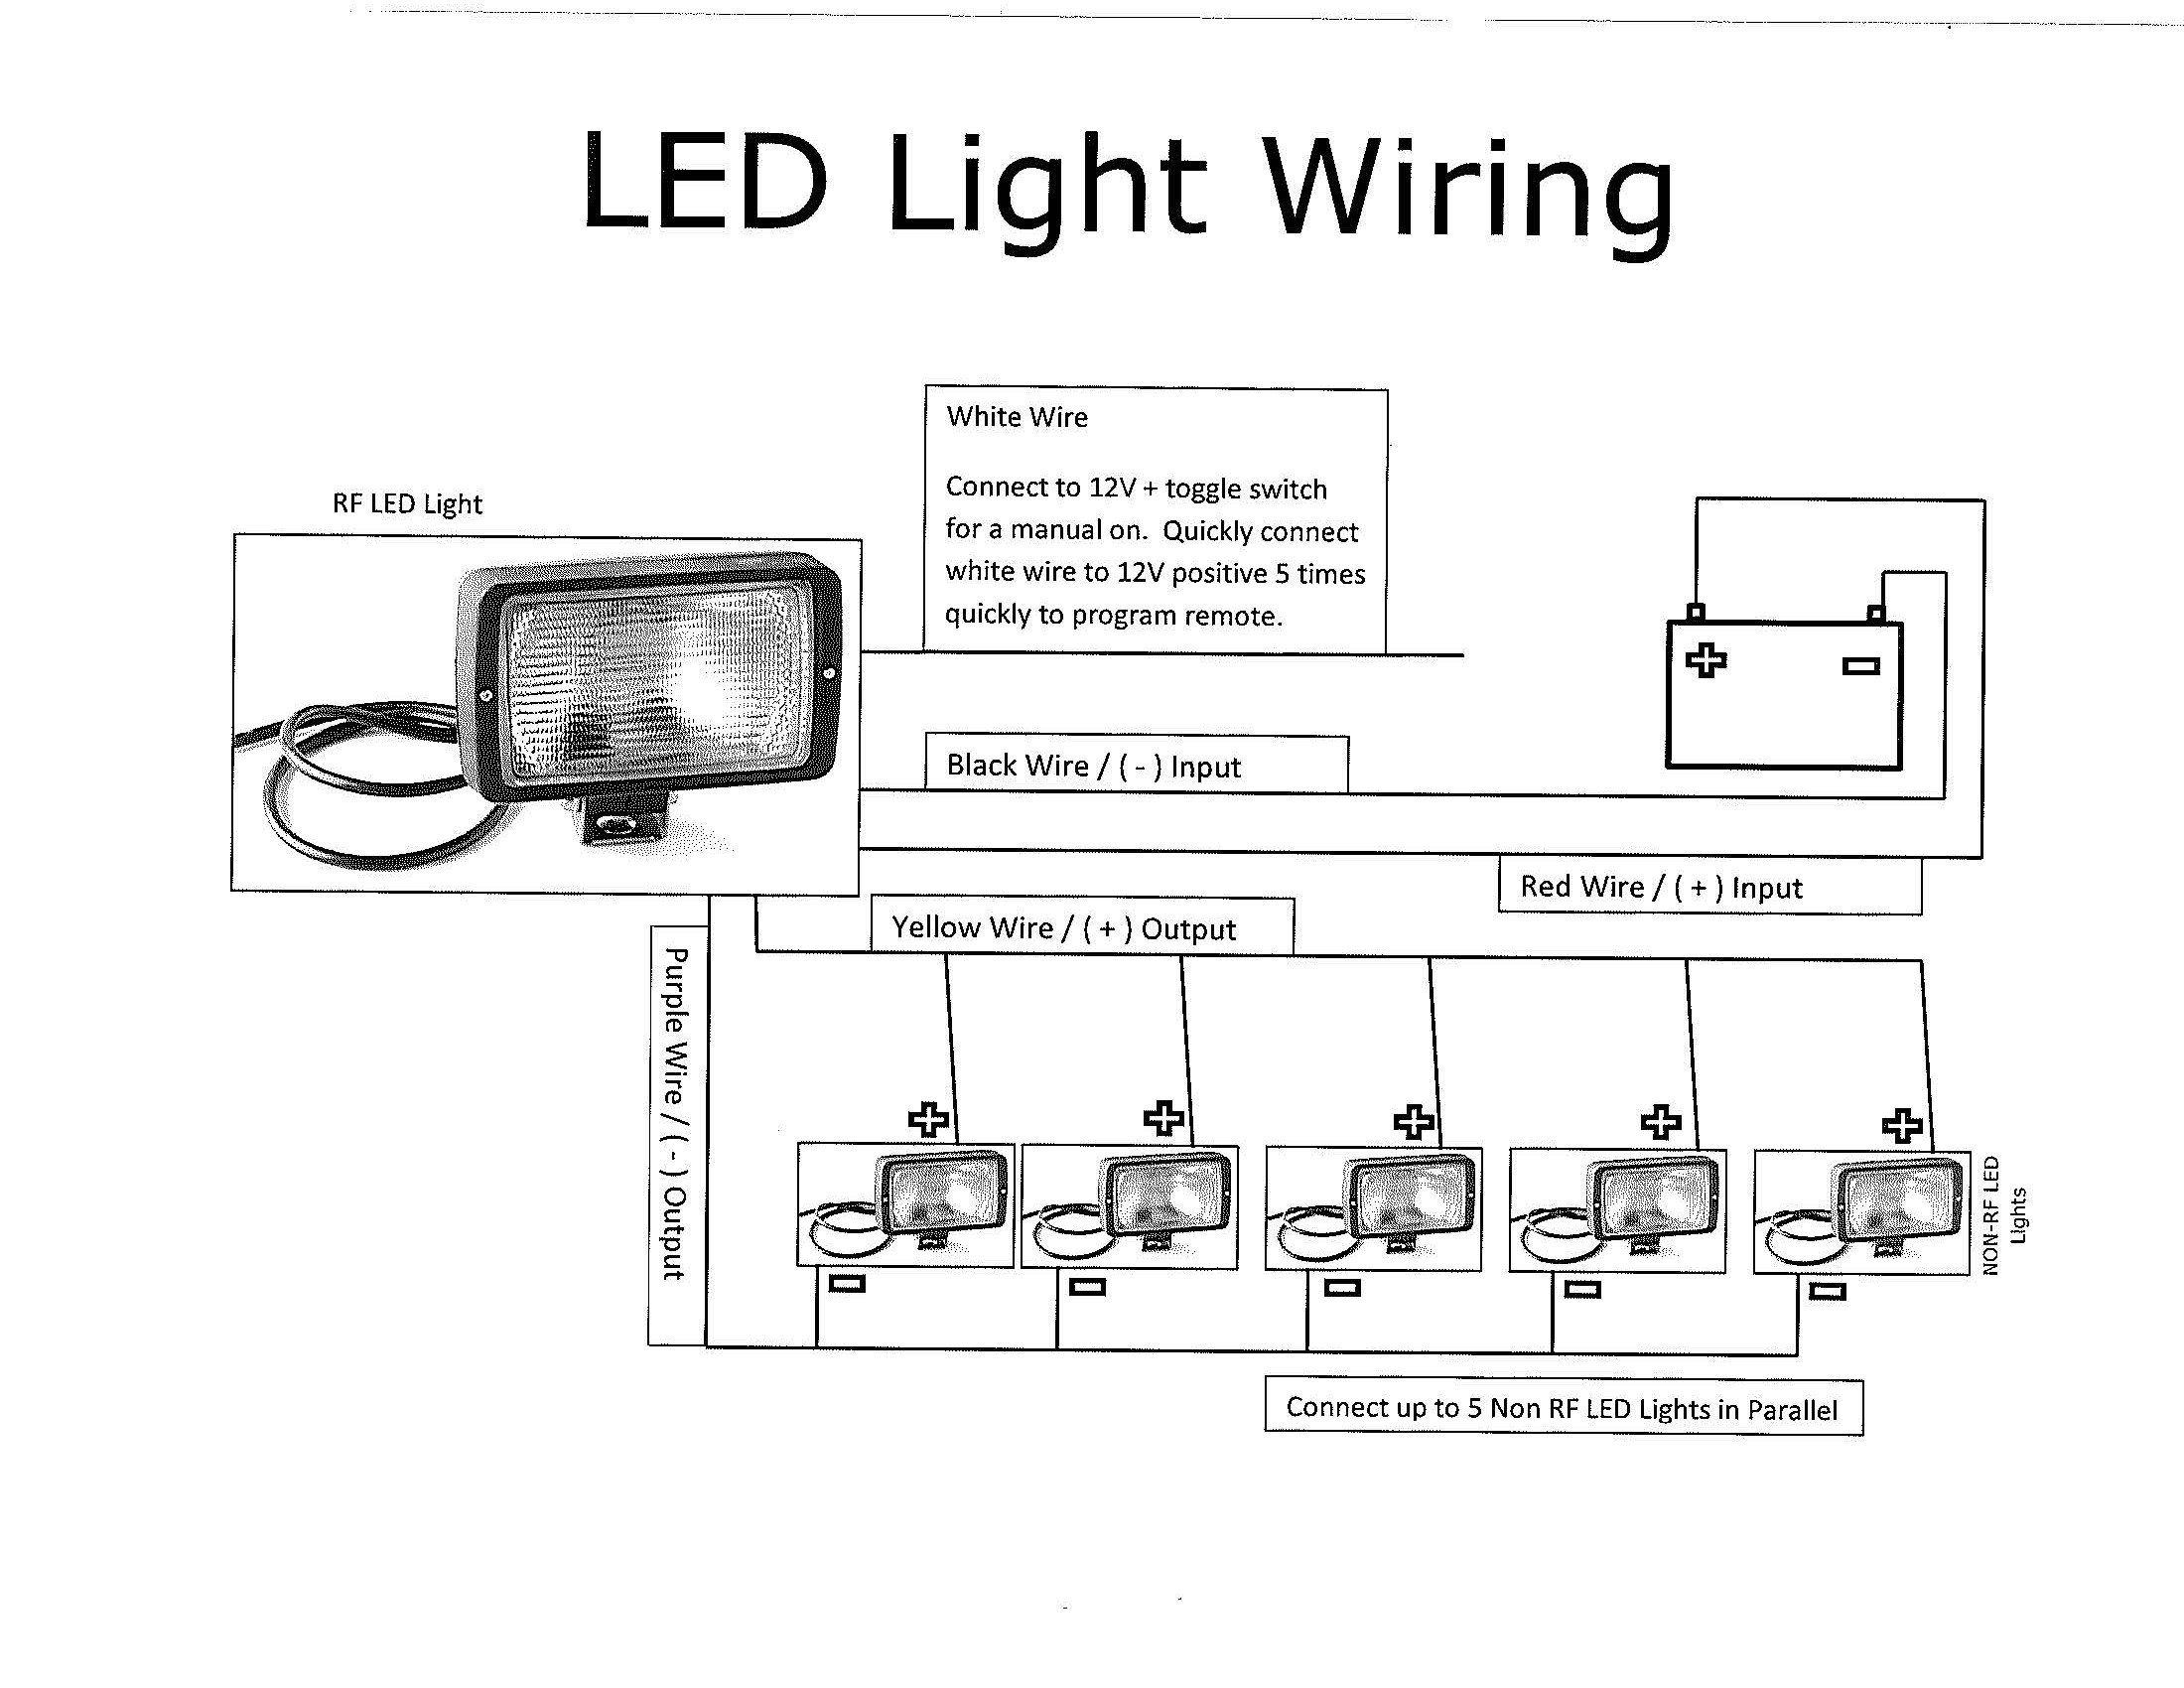 Led Lighting Wiring Diagram 27 Images Bulbs Circuit Worklight E1366089690438 12v Work Light Switch Modeler U2022 Free